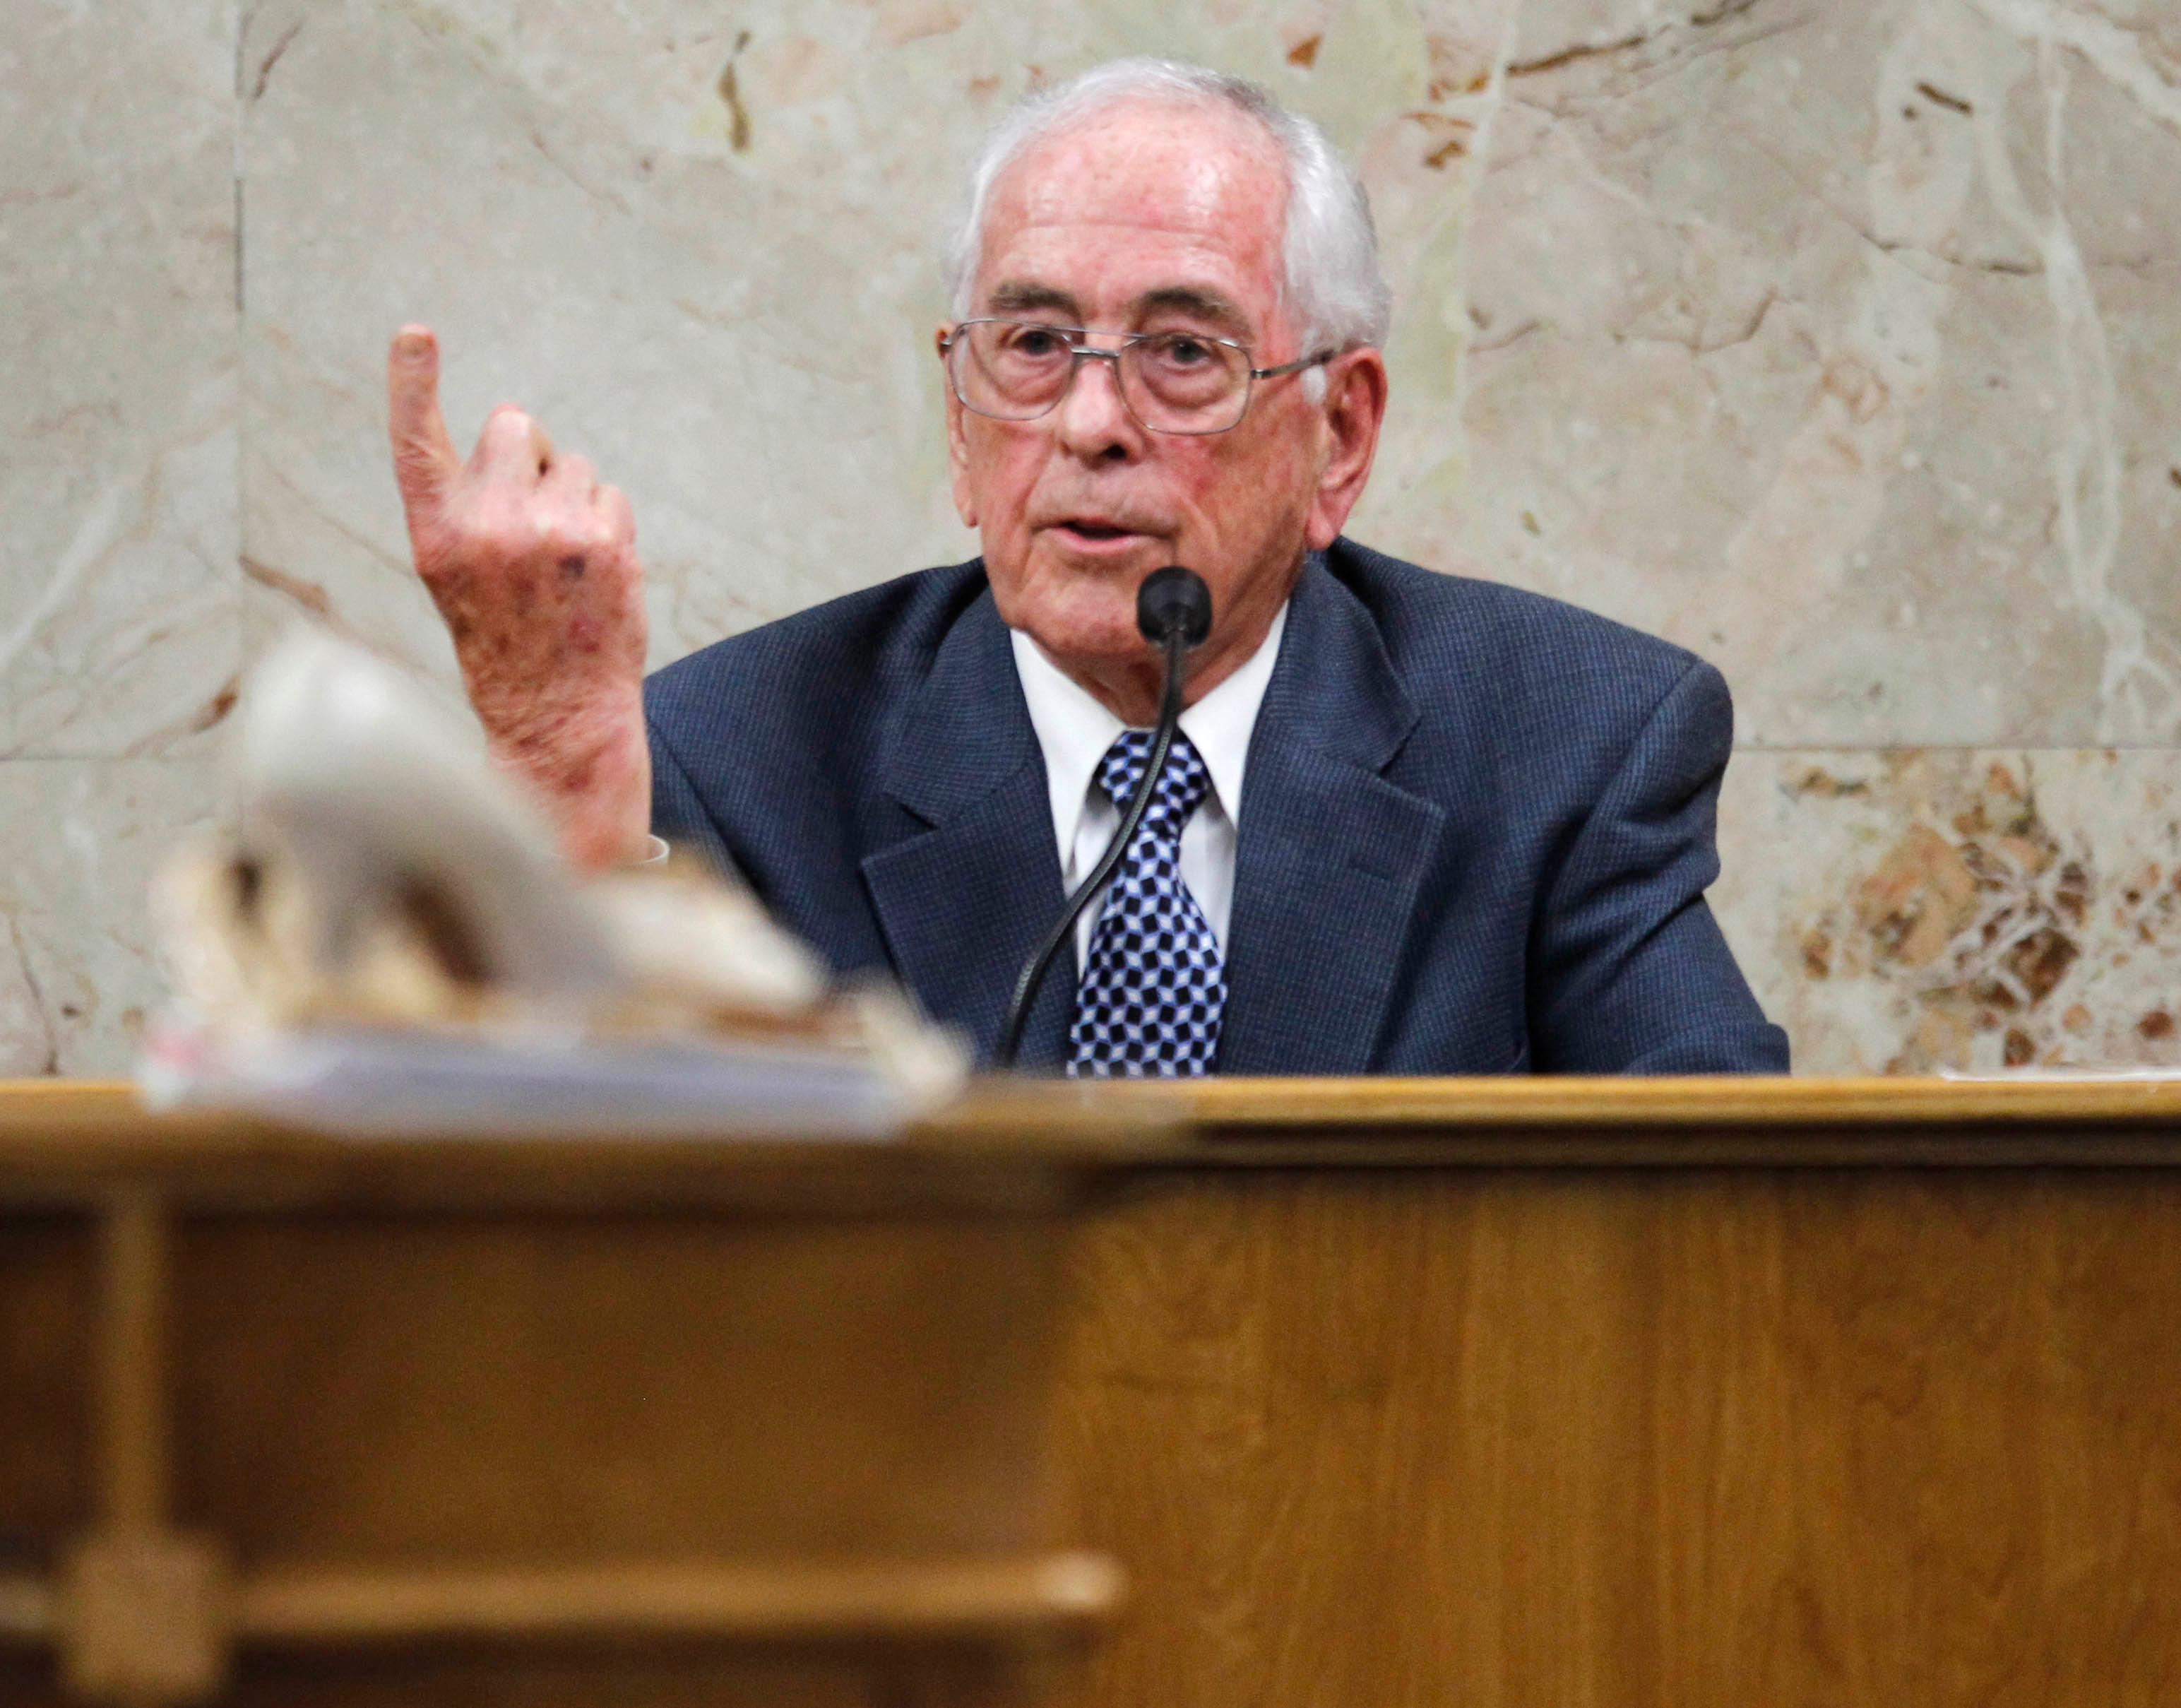 Dale Tacheny testifies in the 92nd state District Court during John Bernard Feit's trial for the 1960 murder of Irene Garza Monday, December, 4, 2017, at the Hidalgo County Courthouse in Edinburg. Tacheny testified that Feit confessed to him in 1963 while the two were in a monastery in Missouri.  (Nathan Lambrecht/The Monitor/Pool)